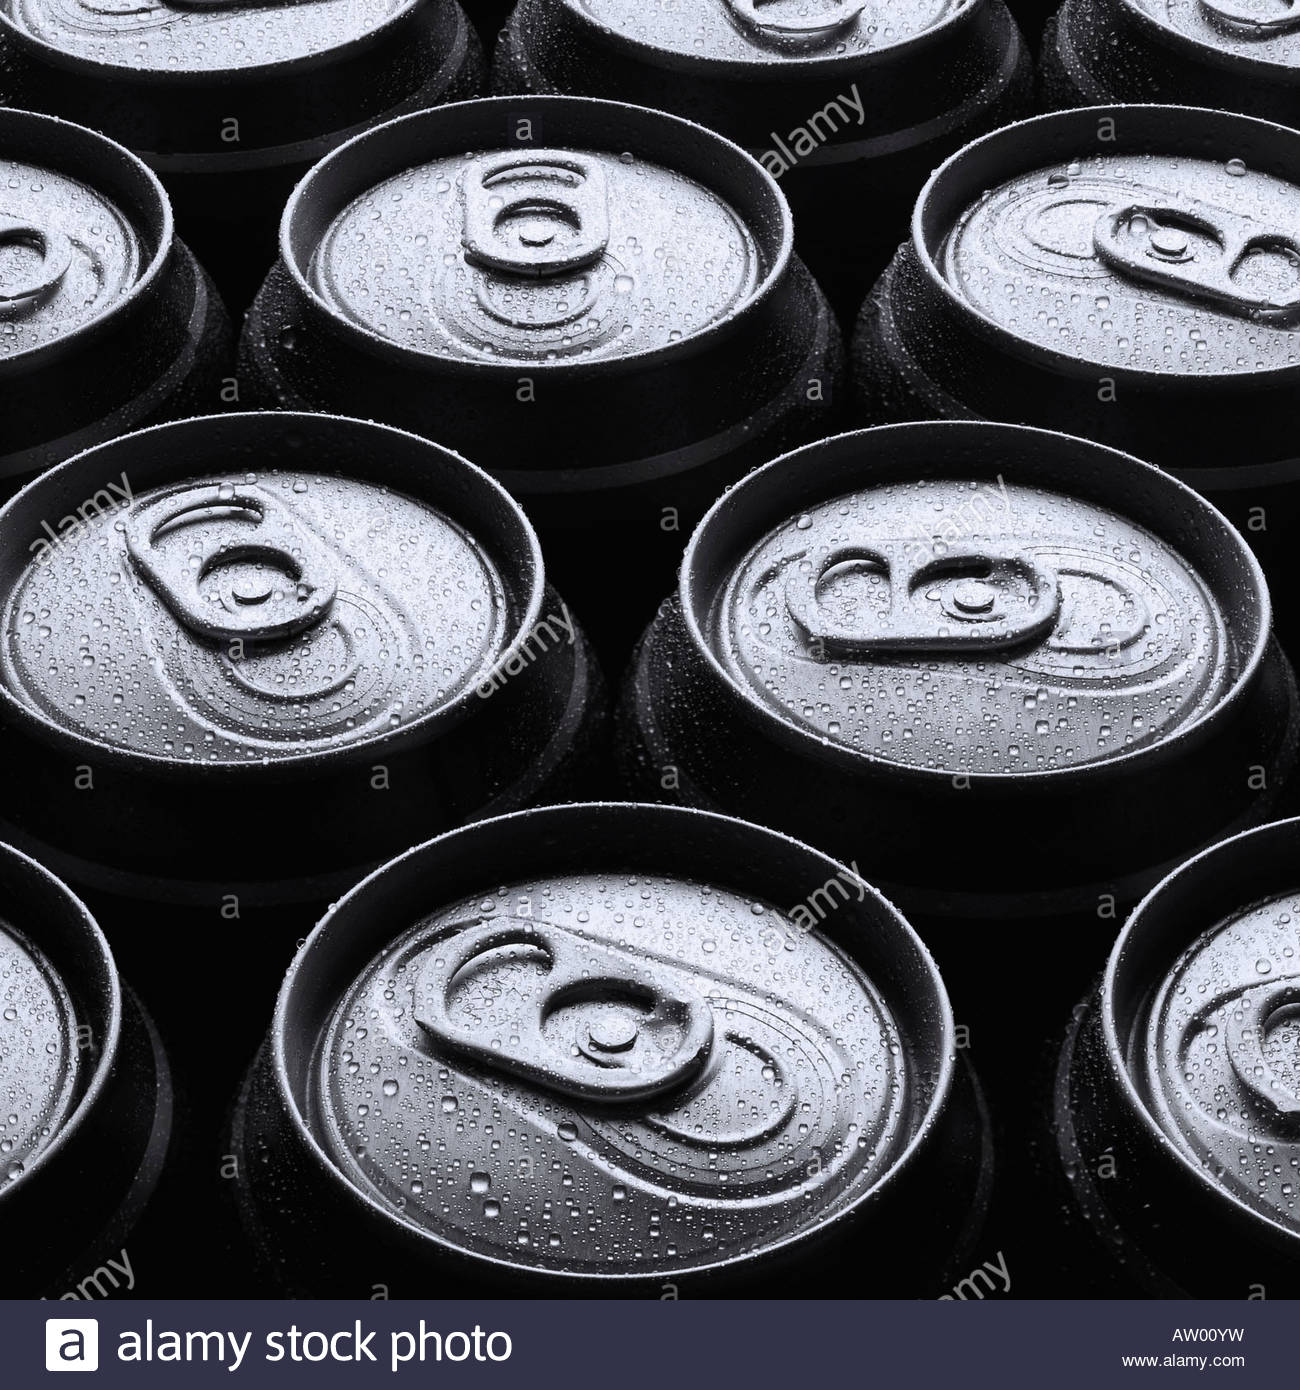 Eleven wet beer cans outdoors - Stock Image